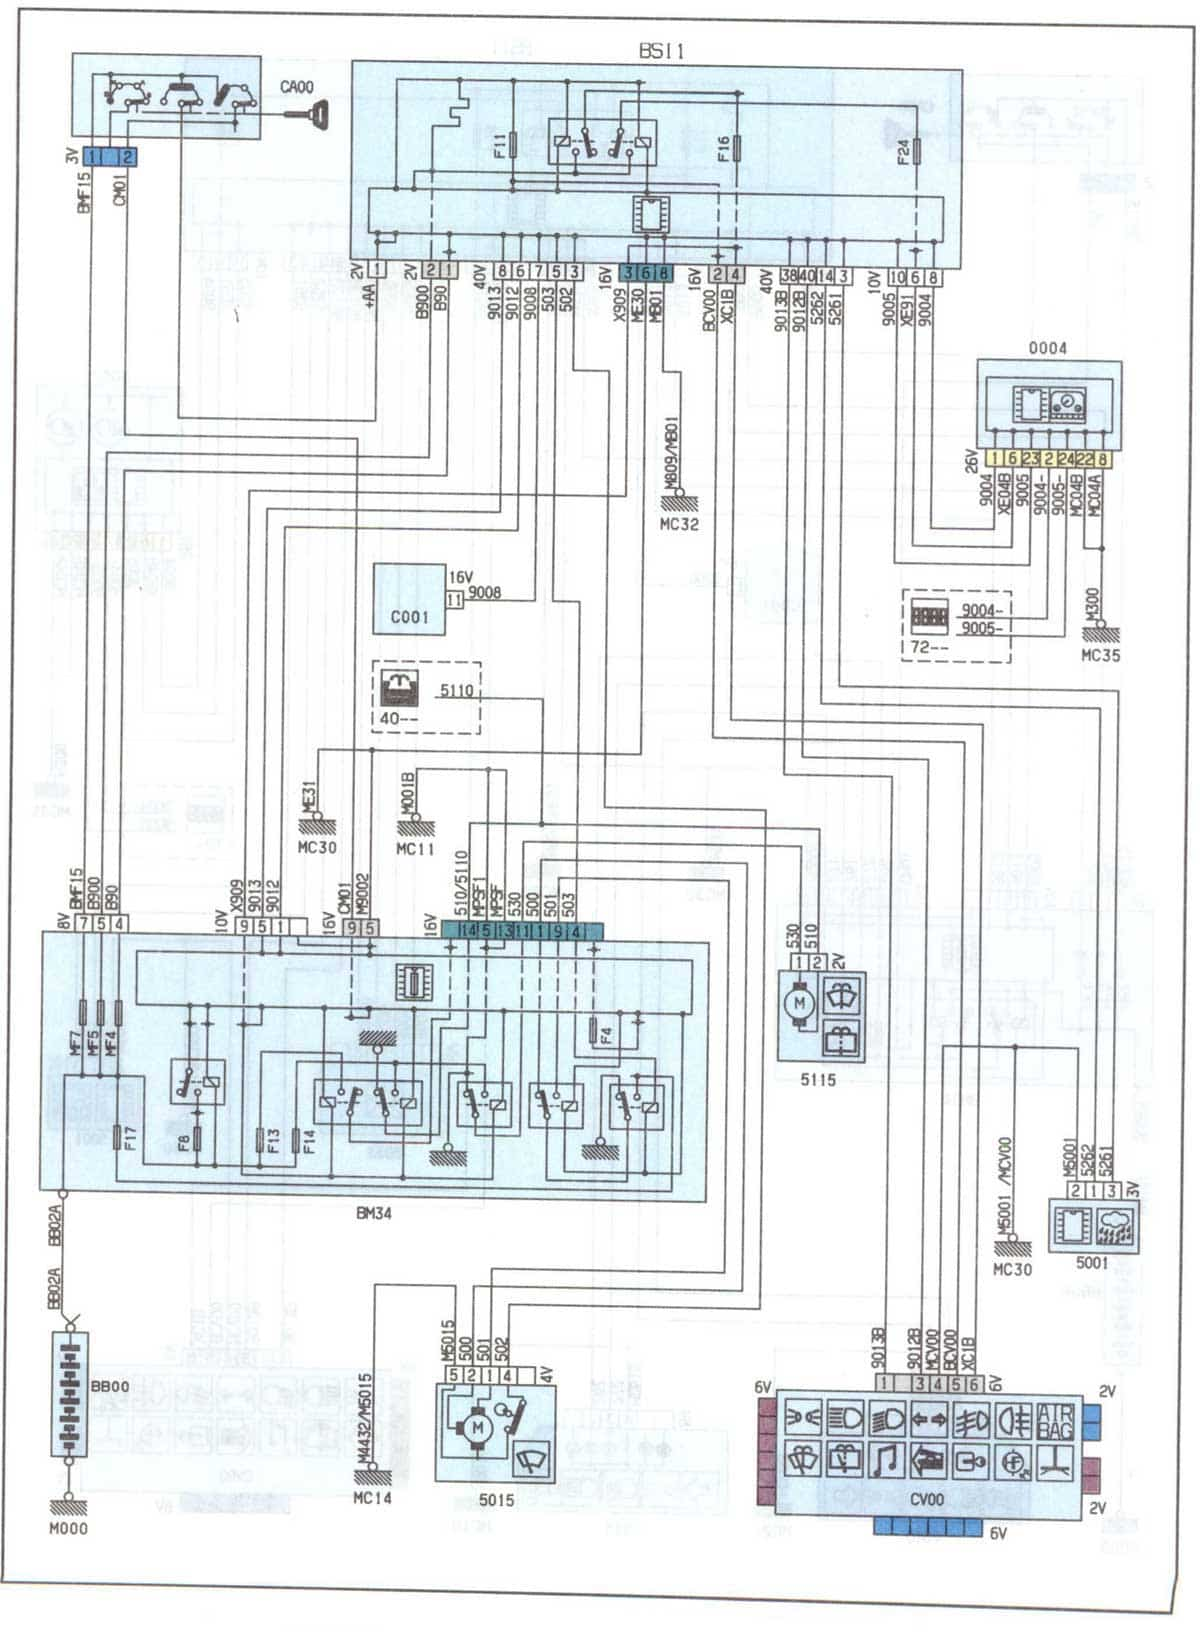 GRAFIK Citroen C5 Maintenance Wiring Diagram HD Version - EAGLEADS.KINGGO.FR | Citroen C5 Wiring Diagram Free |  | eagleads kinggo fr